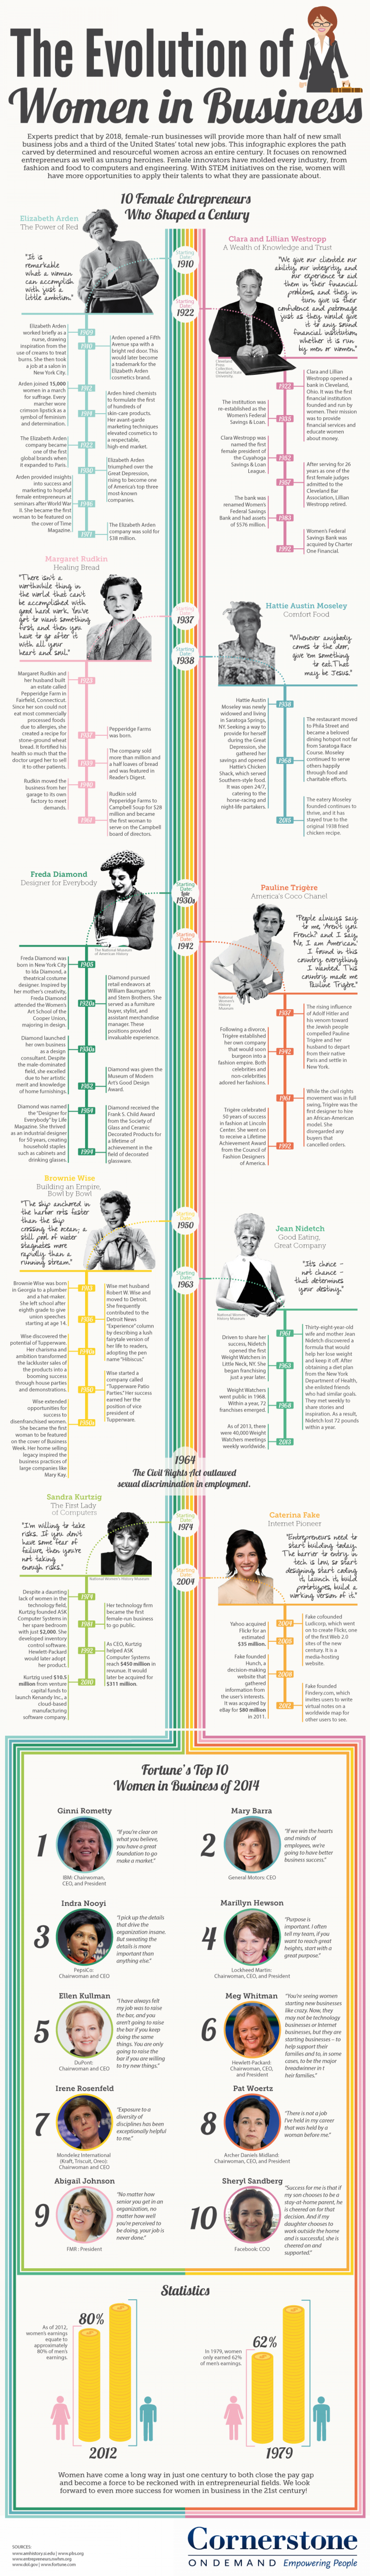 The Evolution of Women in Business Infographic